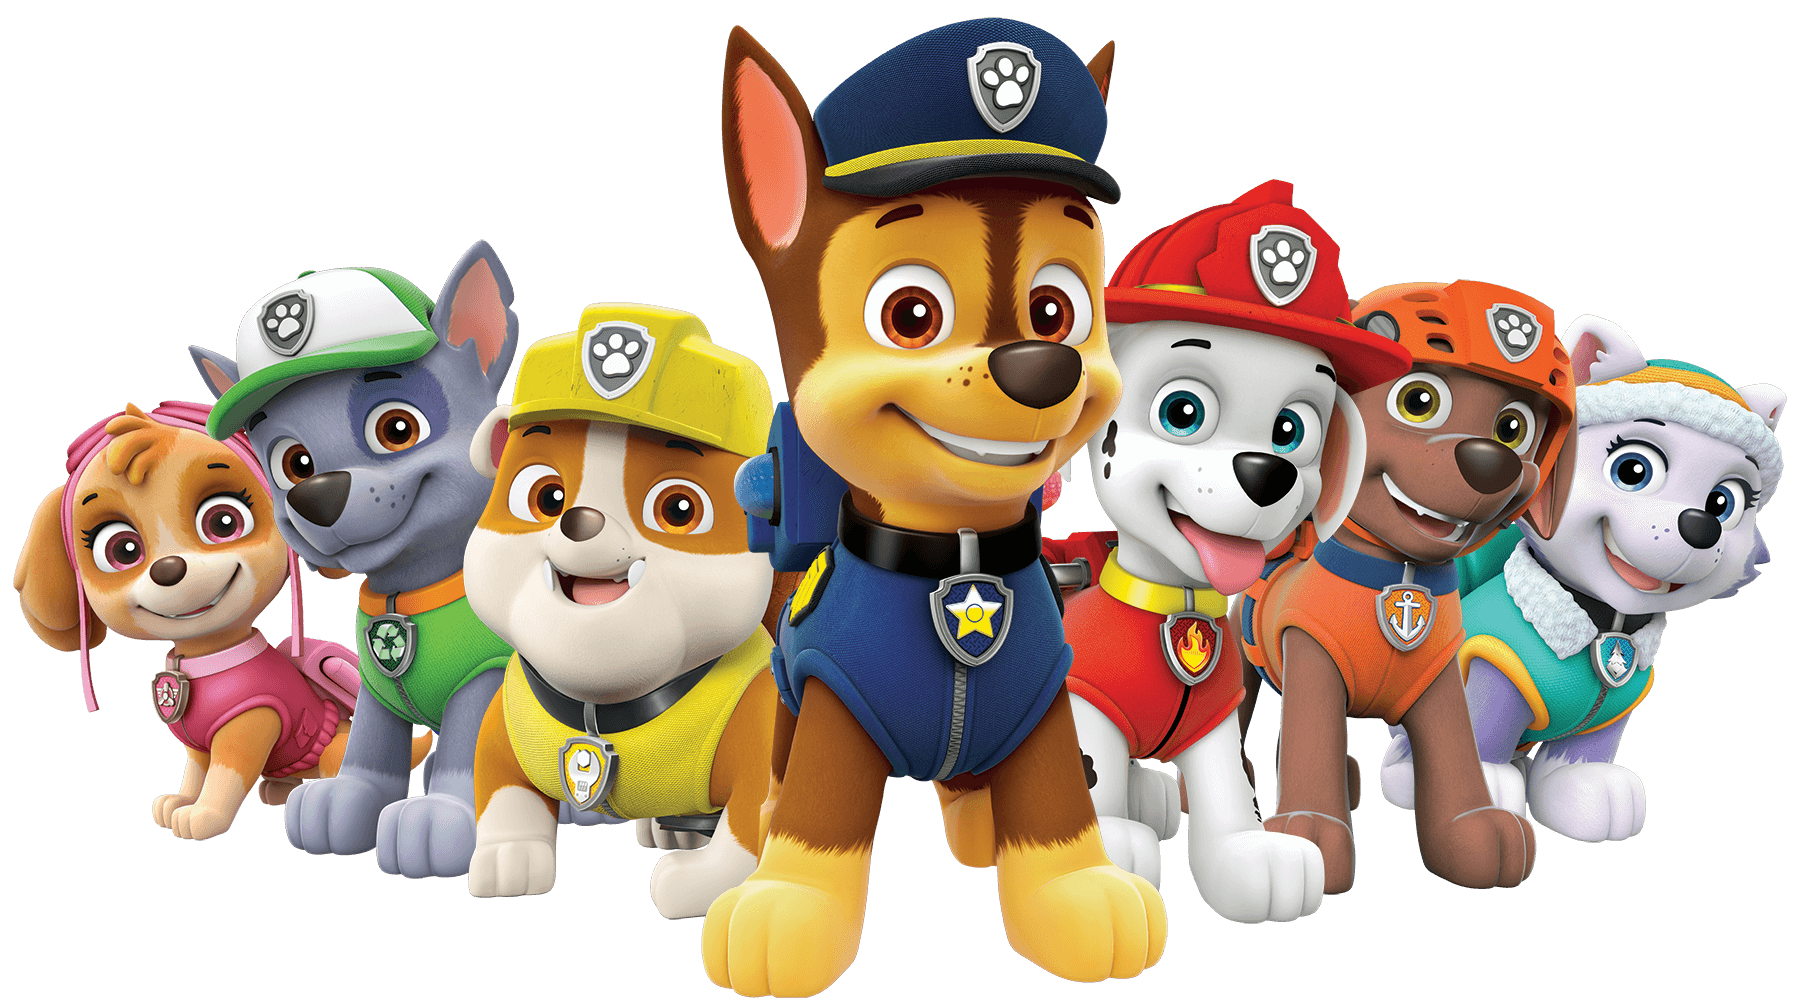 1800x1008 Paw Patrol All Characters Png